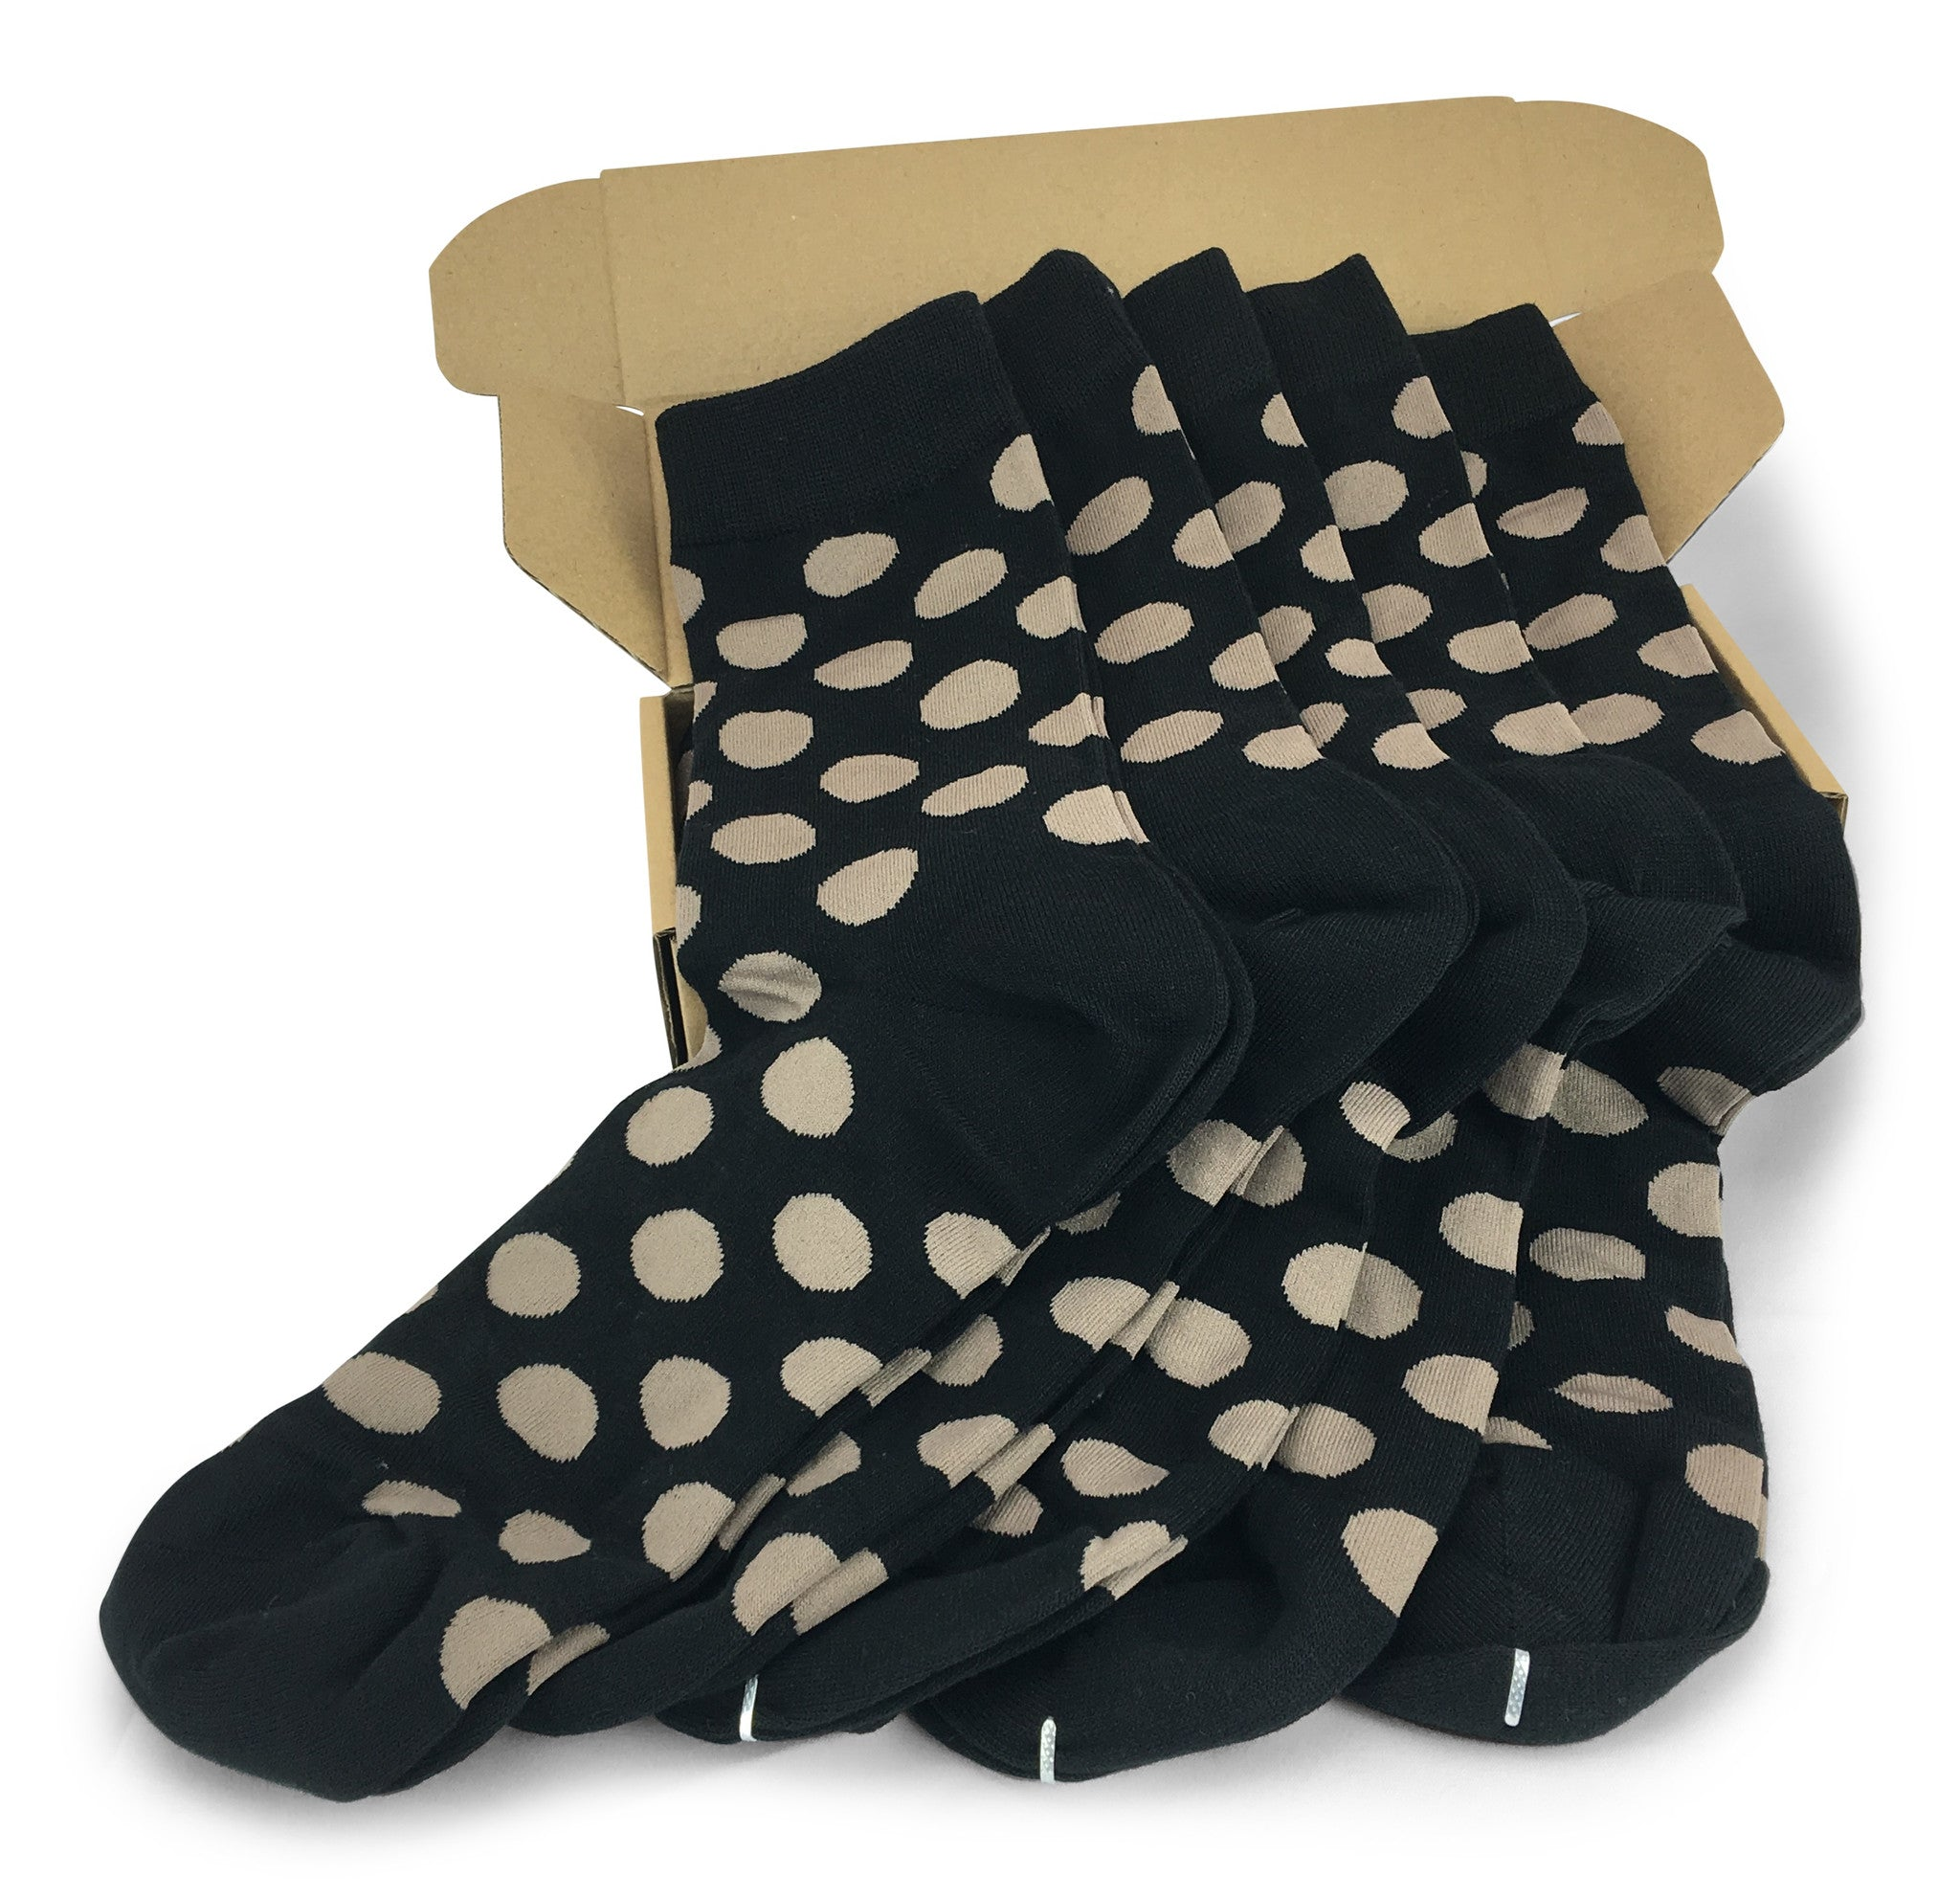 Wedding Party Socks   Black With Taupe Dots